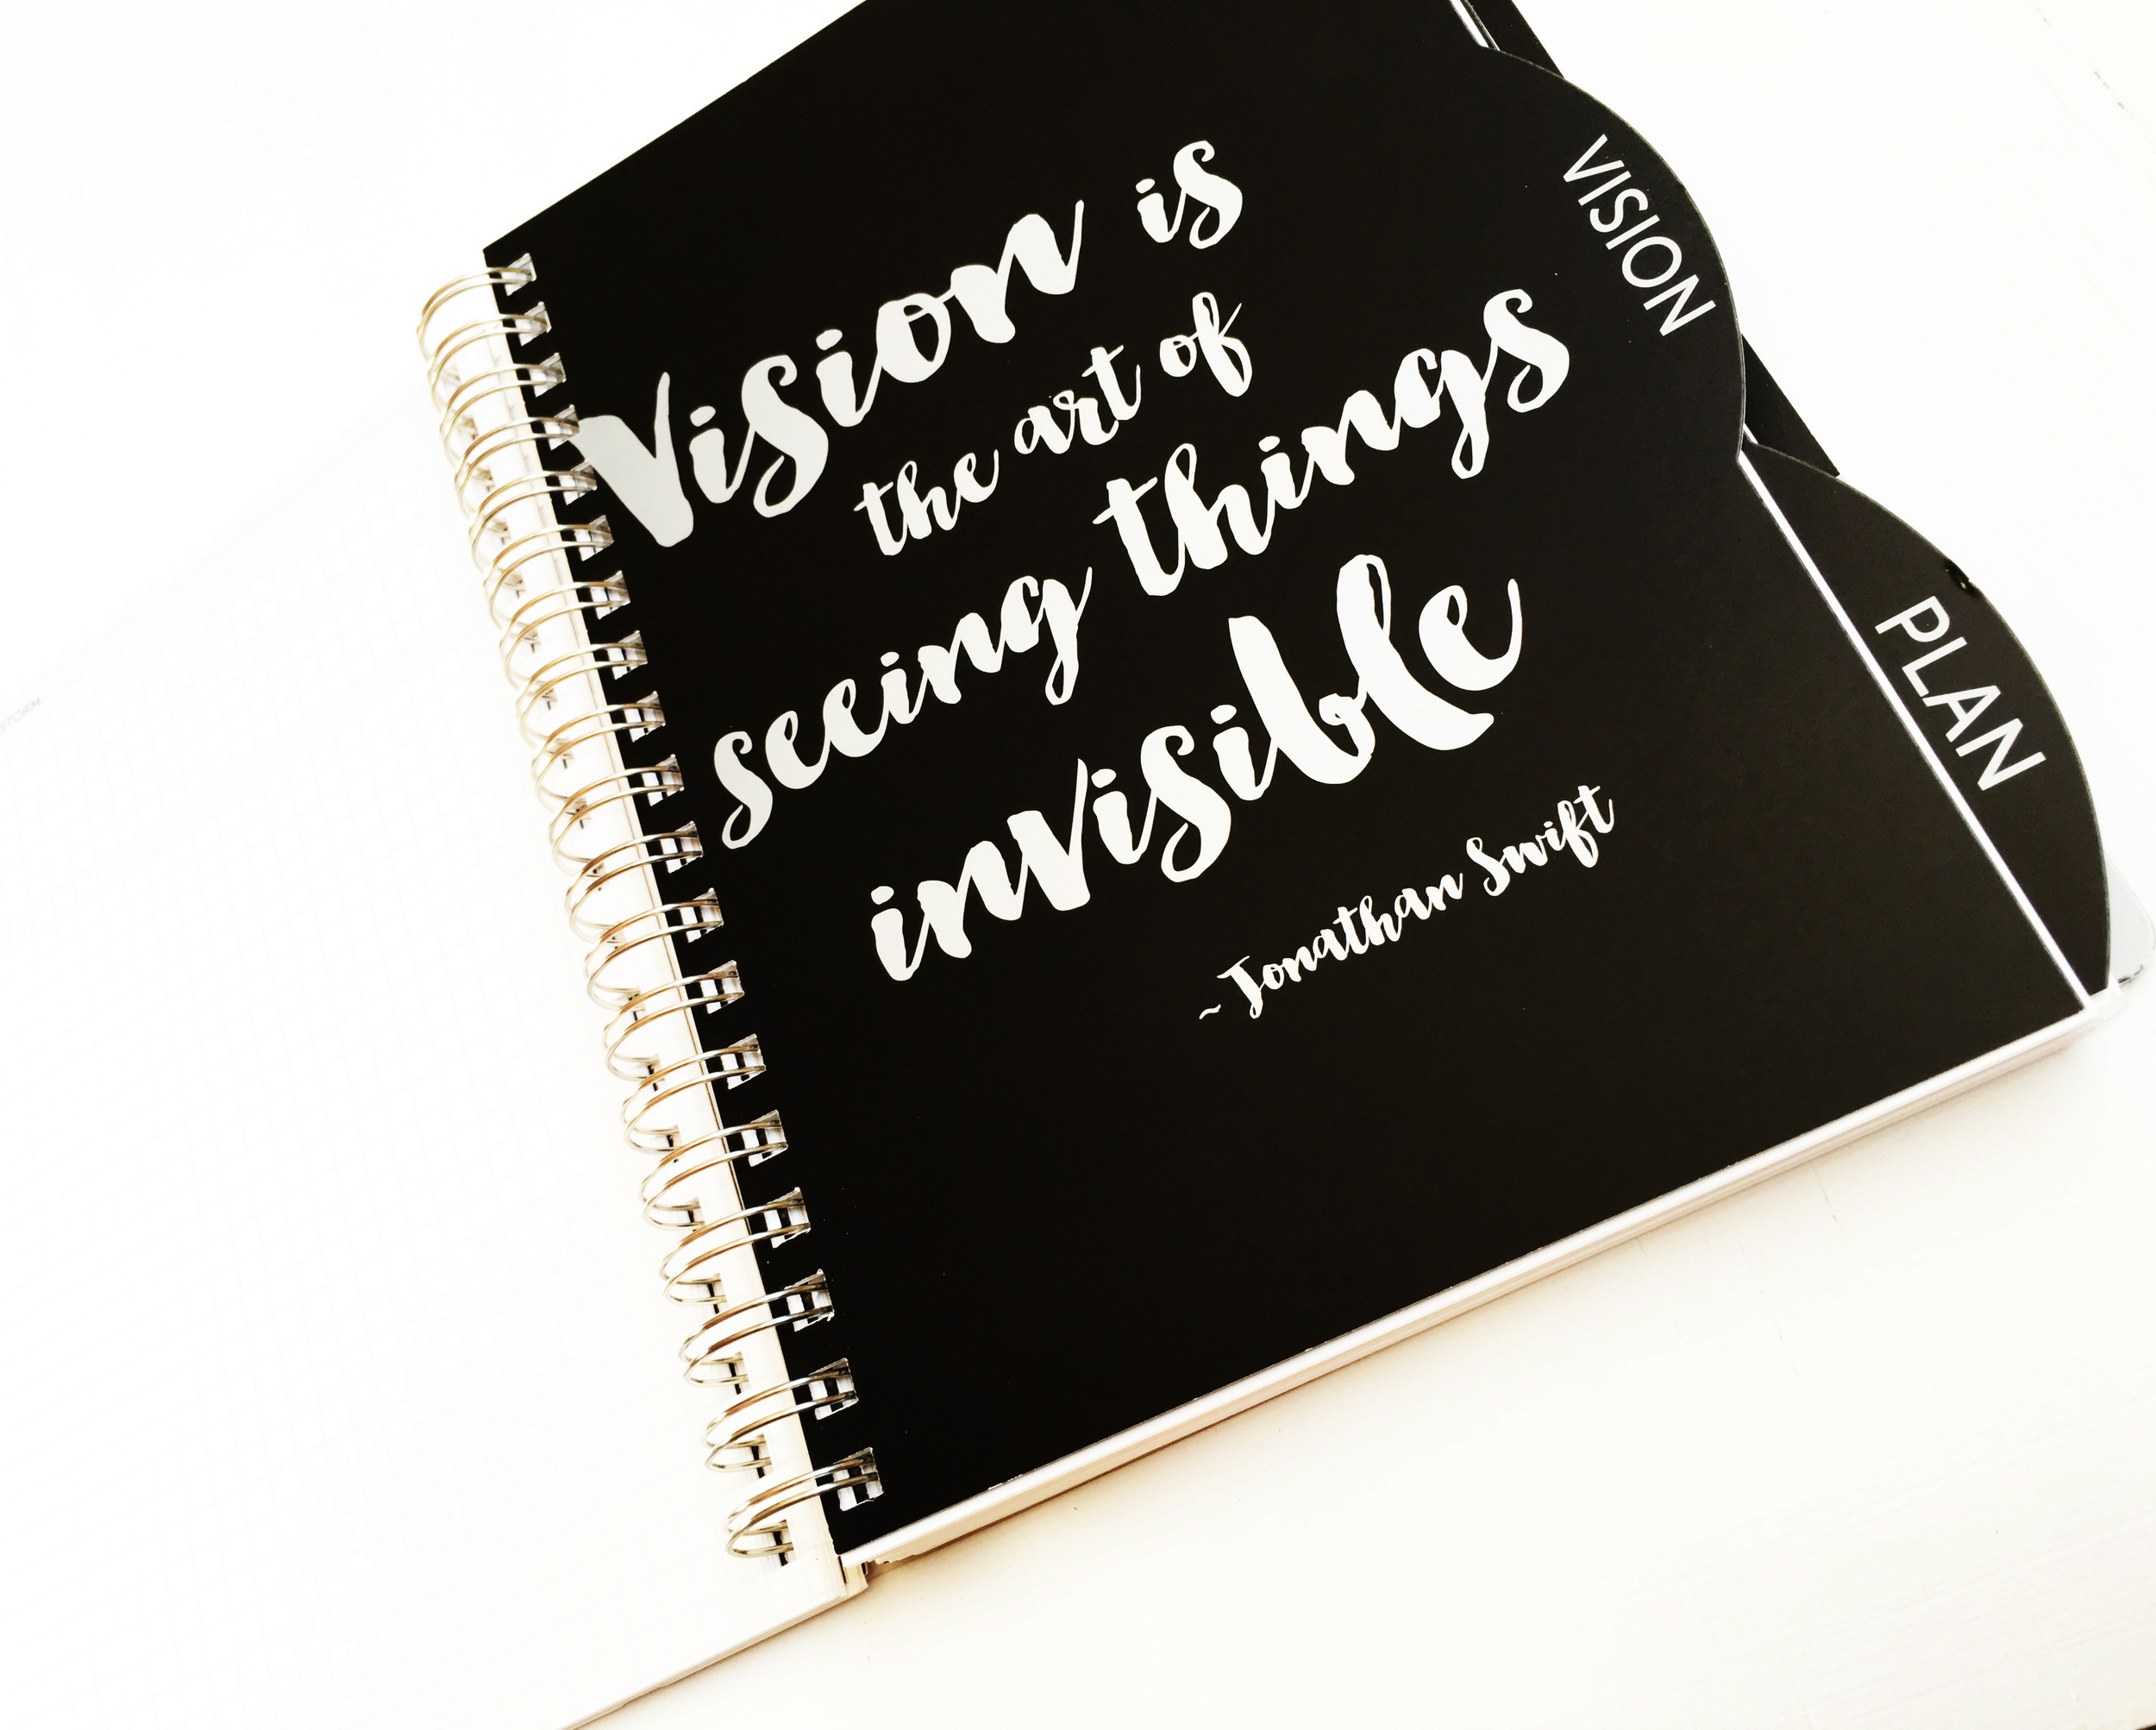 sam-c-perry-visionary-journal-inside-pages.jpg